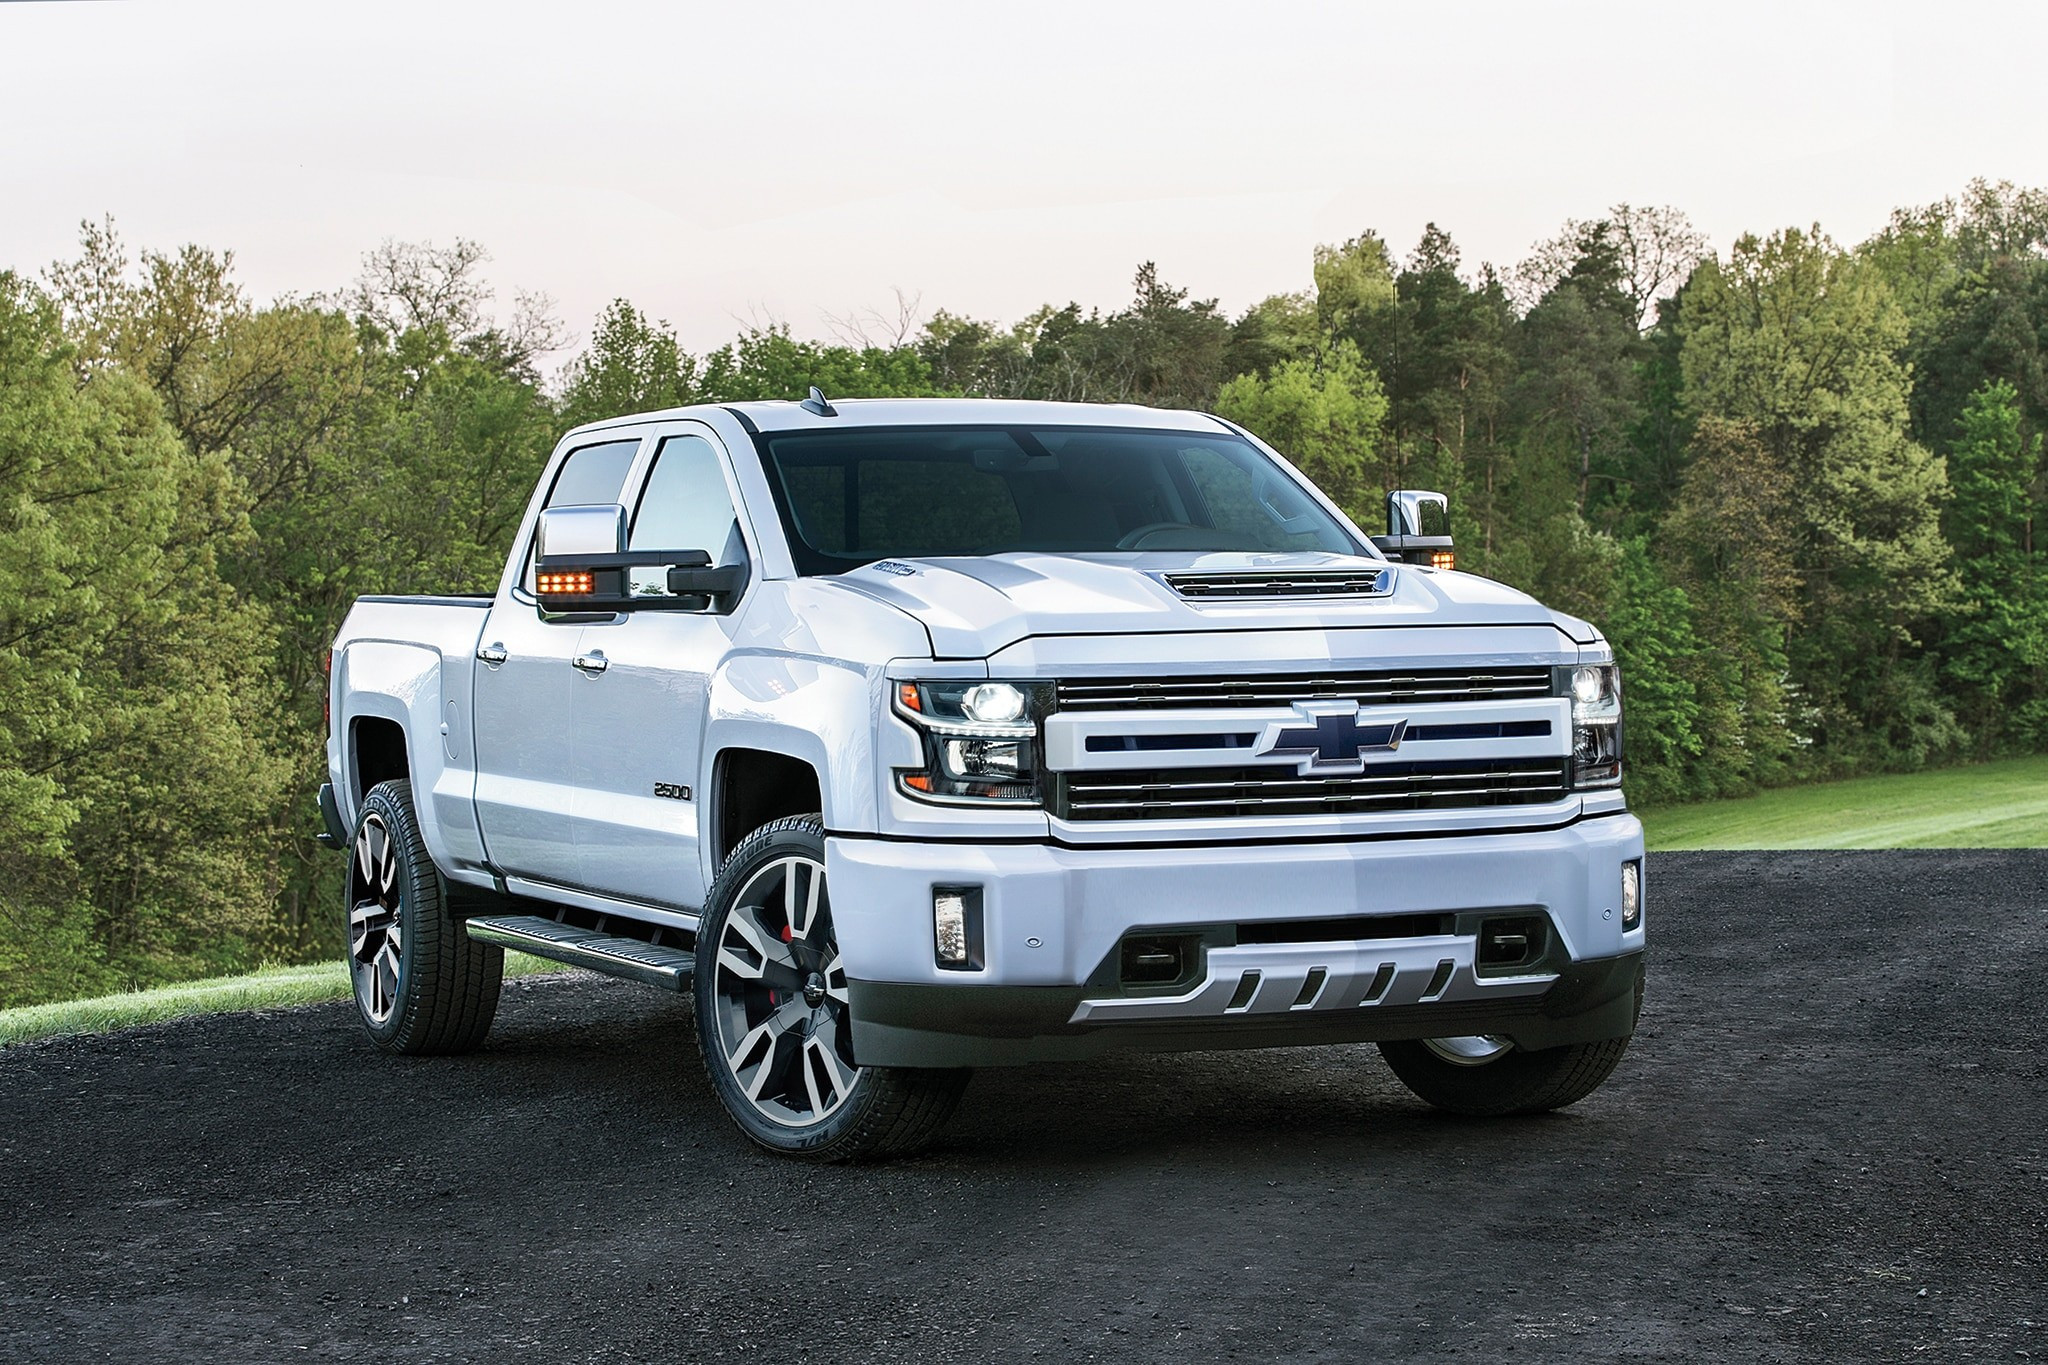 62 A 2020 Chevy Duramax Picture